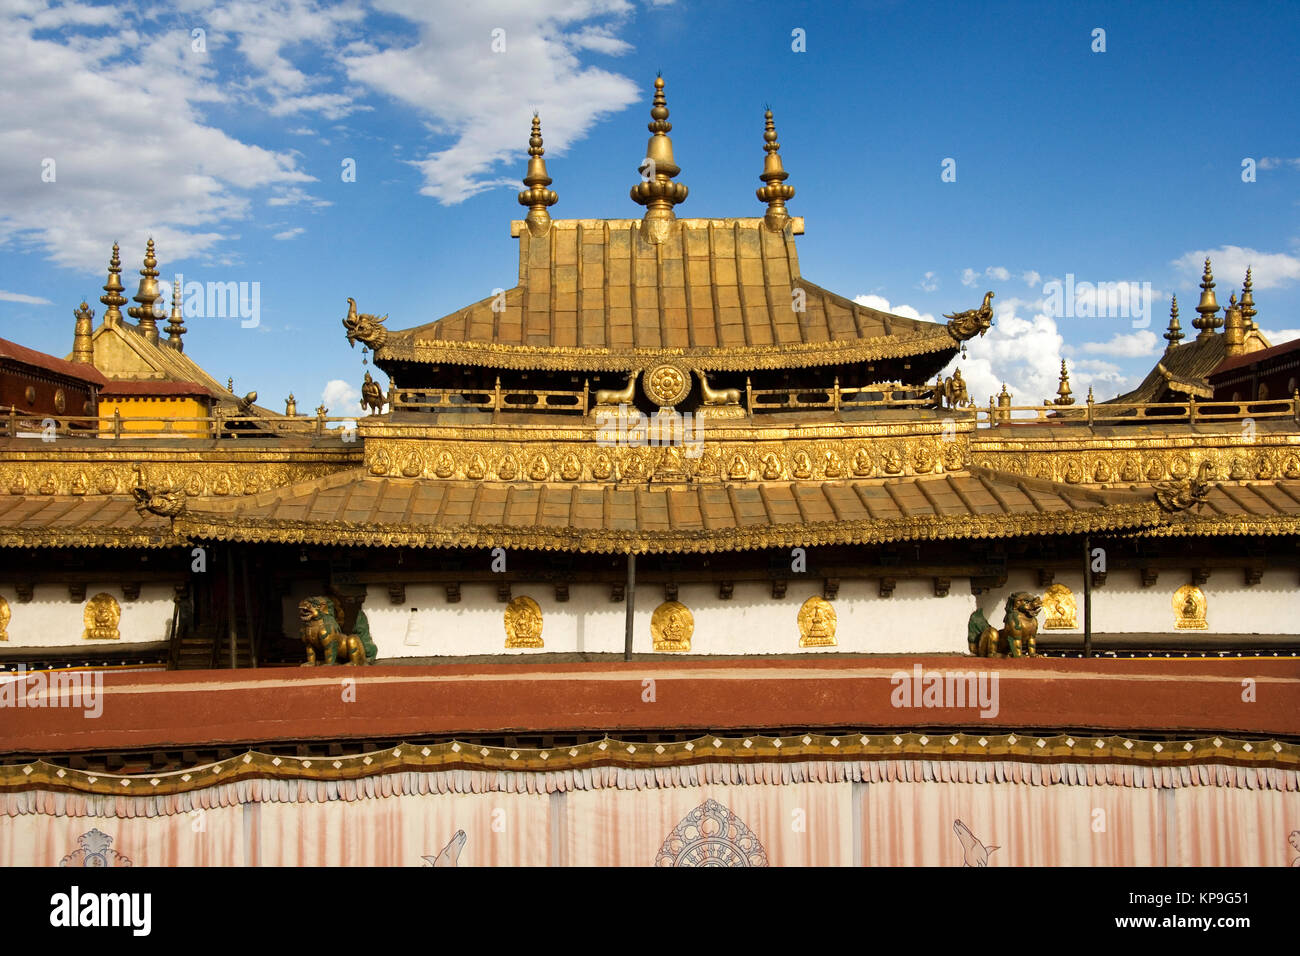 Roof of the Jokhang Monastery in Lhasa, Tibet, in the People's Republic of China. - Stock Image